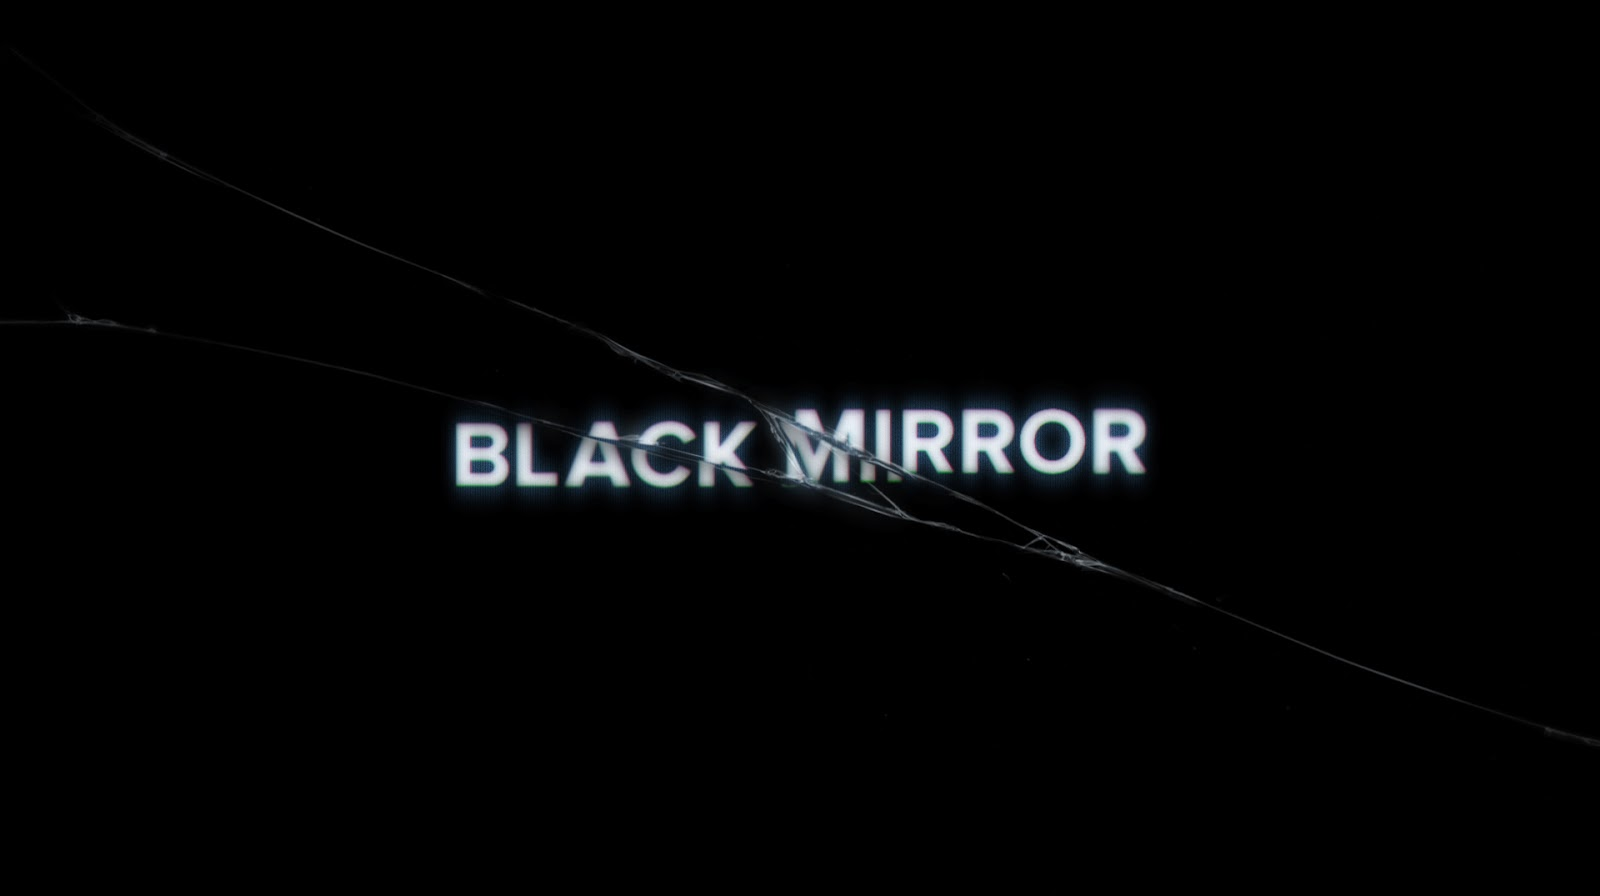 Black Mirror – Info de la serie Black Mirror – Curiosidades, noticias y podcast de Black Mirror